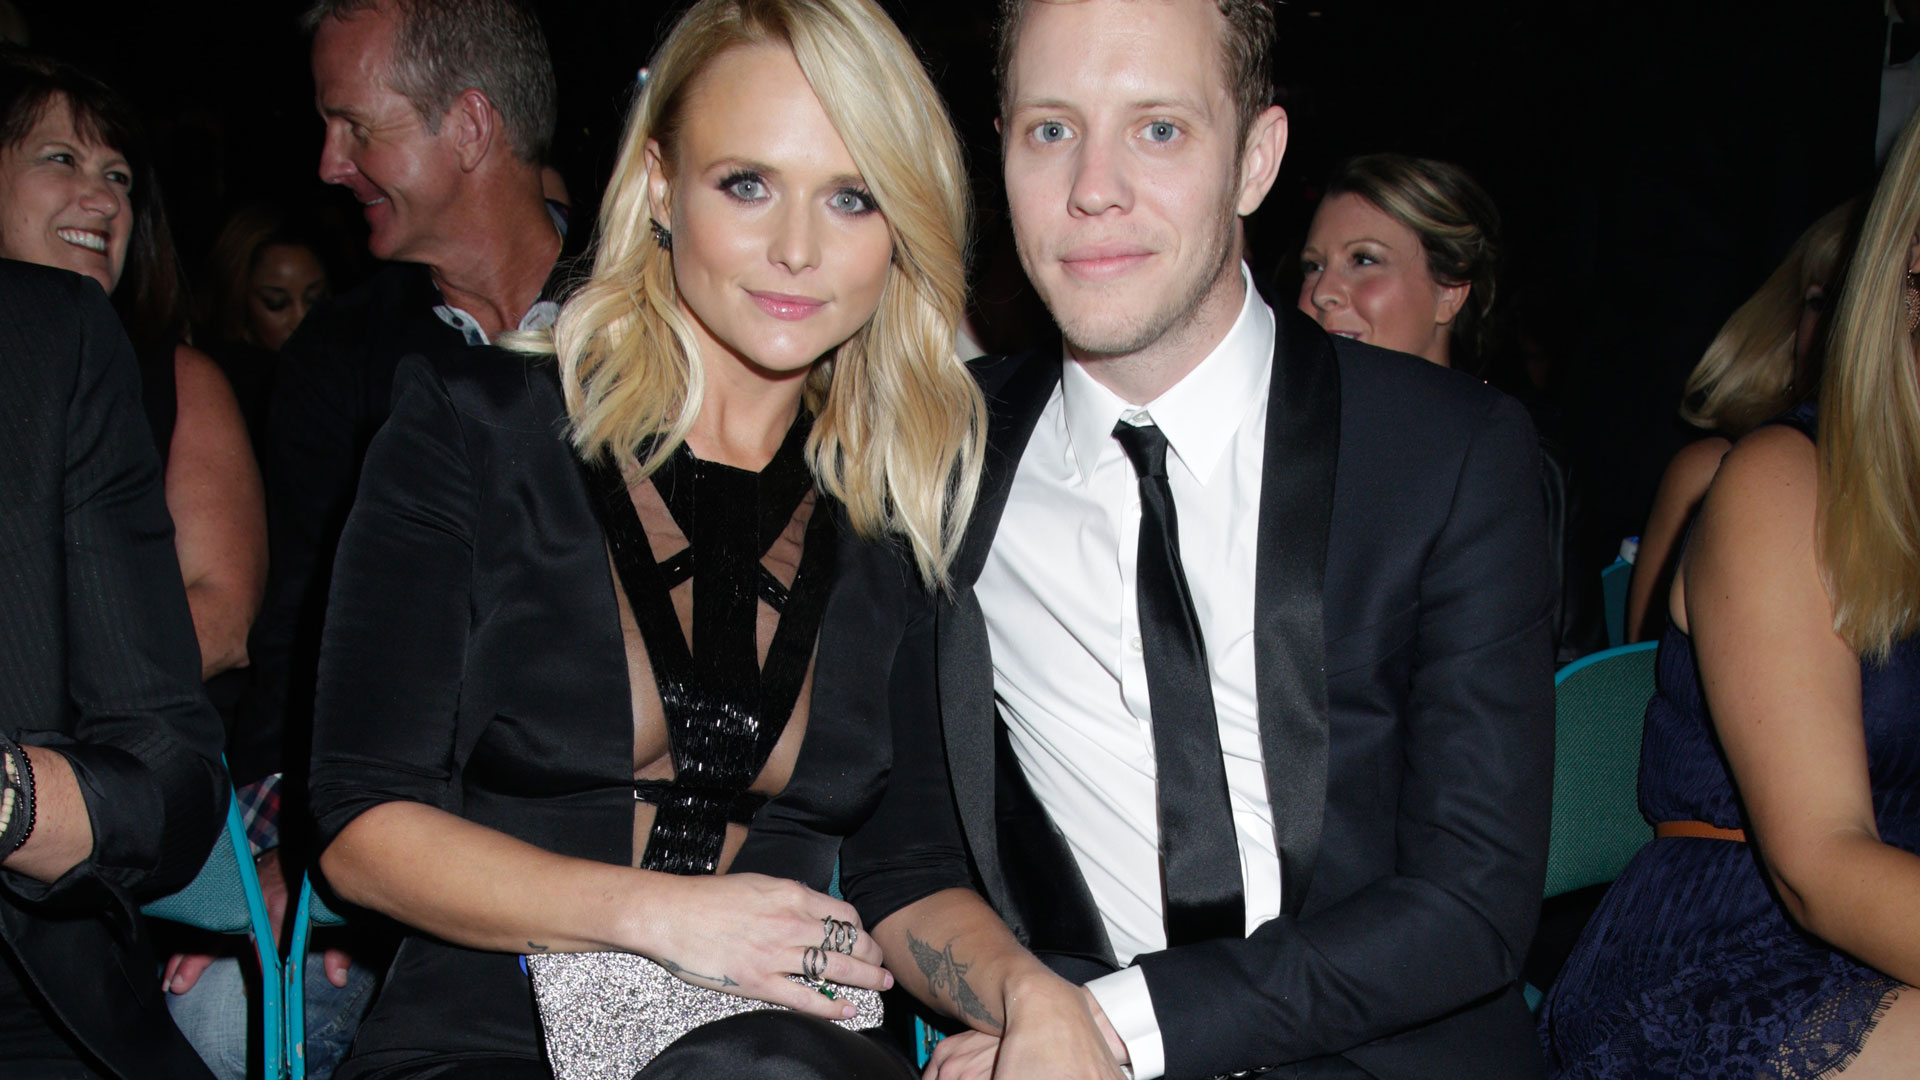 Female Vocalist Of The Year winner, Miranda Lambert, held her new man (and fellow country singer), Anderson East, real close.